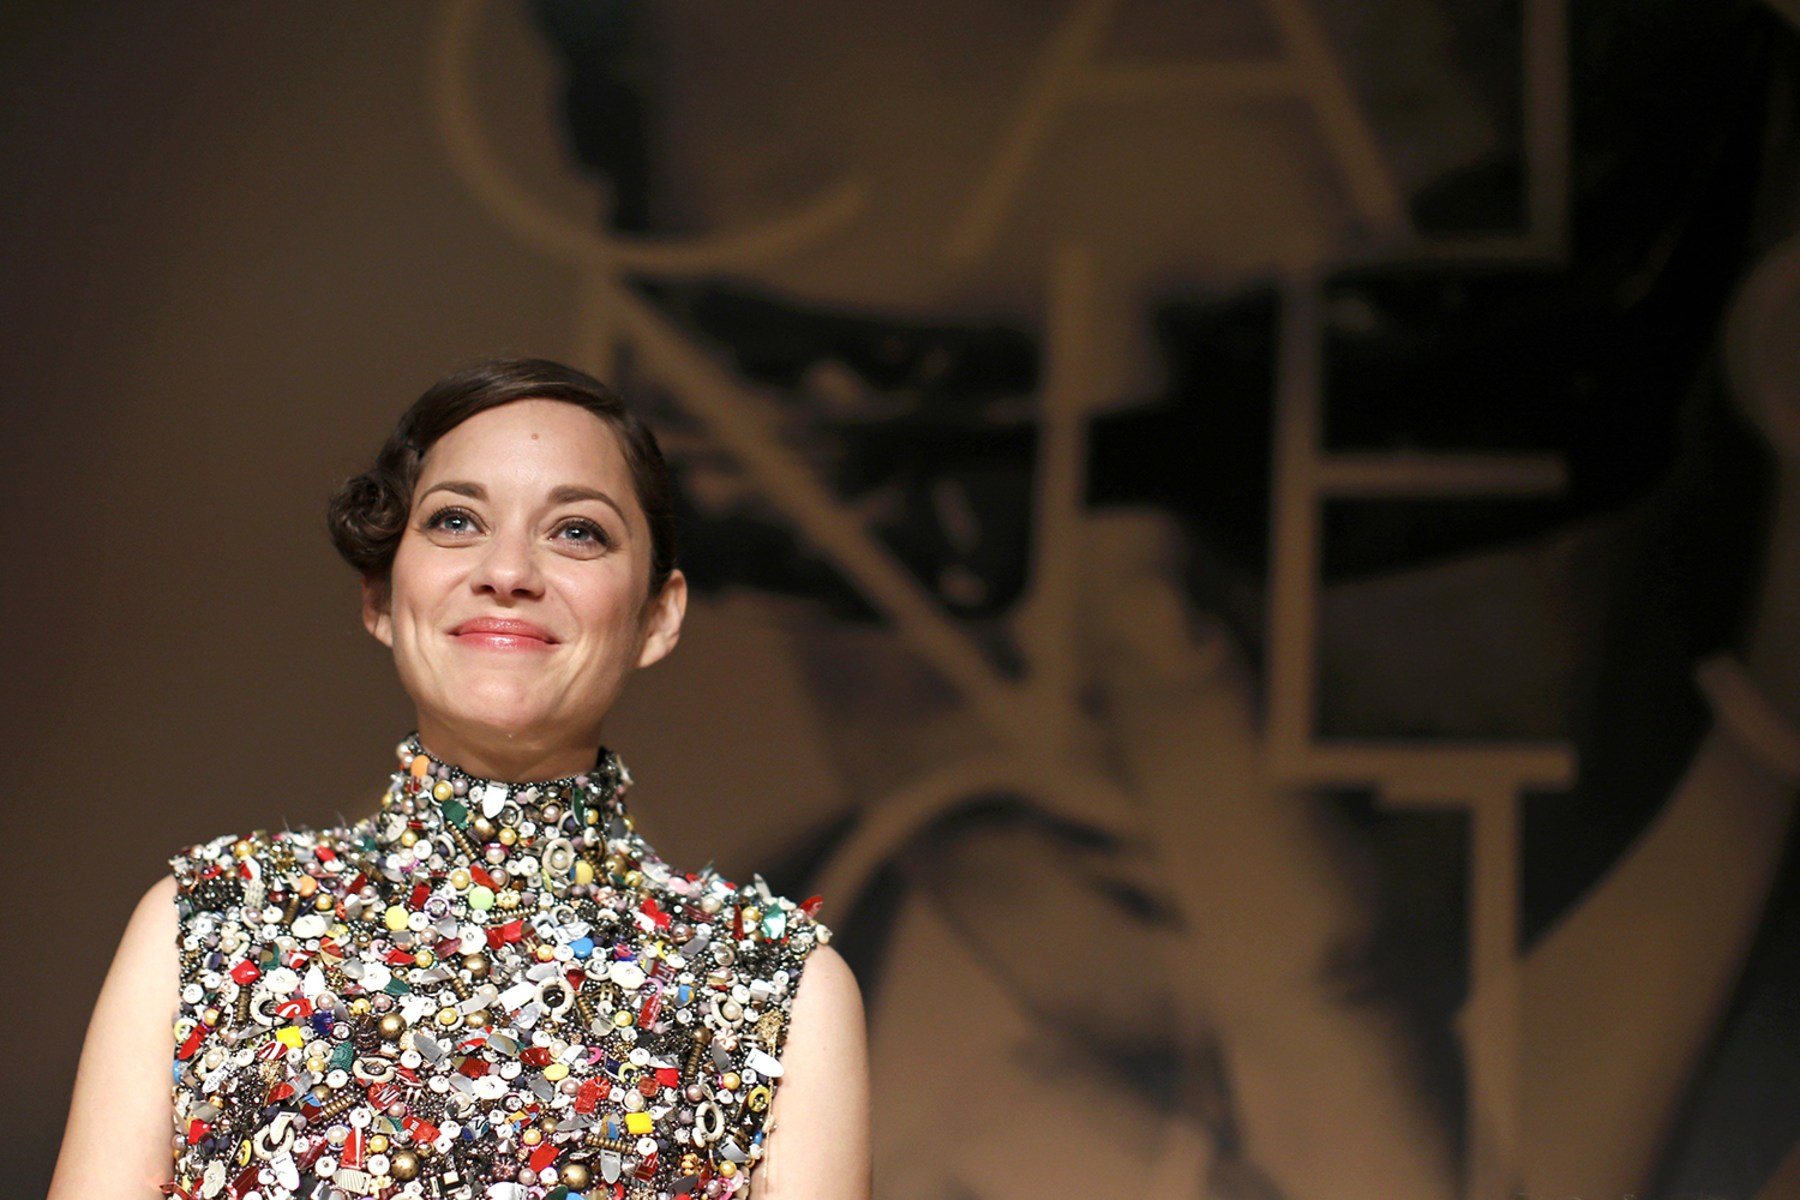 """Image: Cast member Marion Cotillard is seen at the end of a news conference for the film """"Deux jours, une nuit"""" in competition at the 67th Cannes Film Festival in Cannes"""